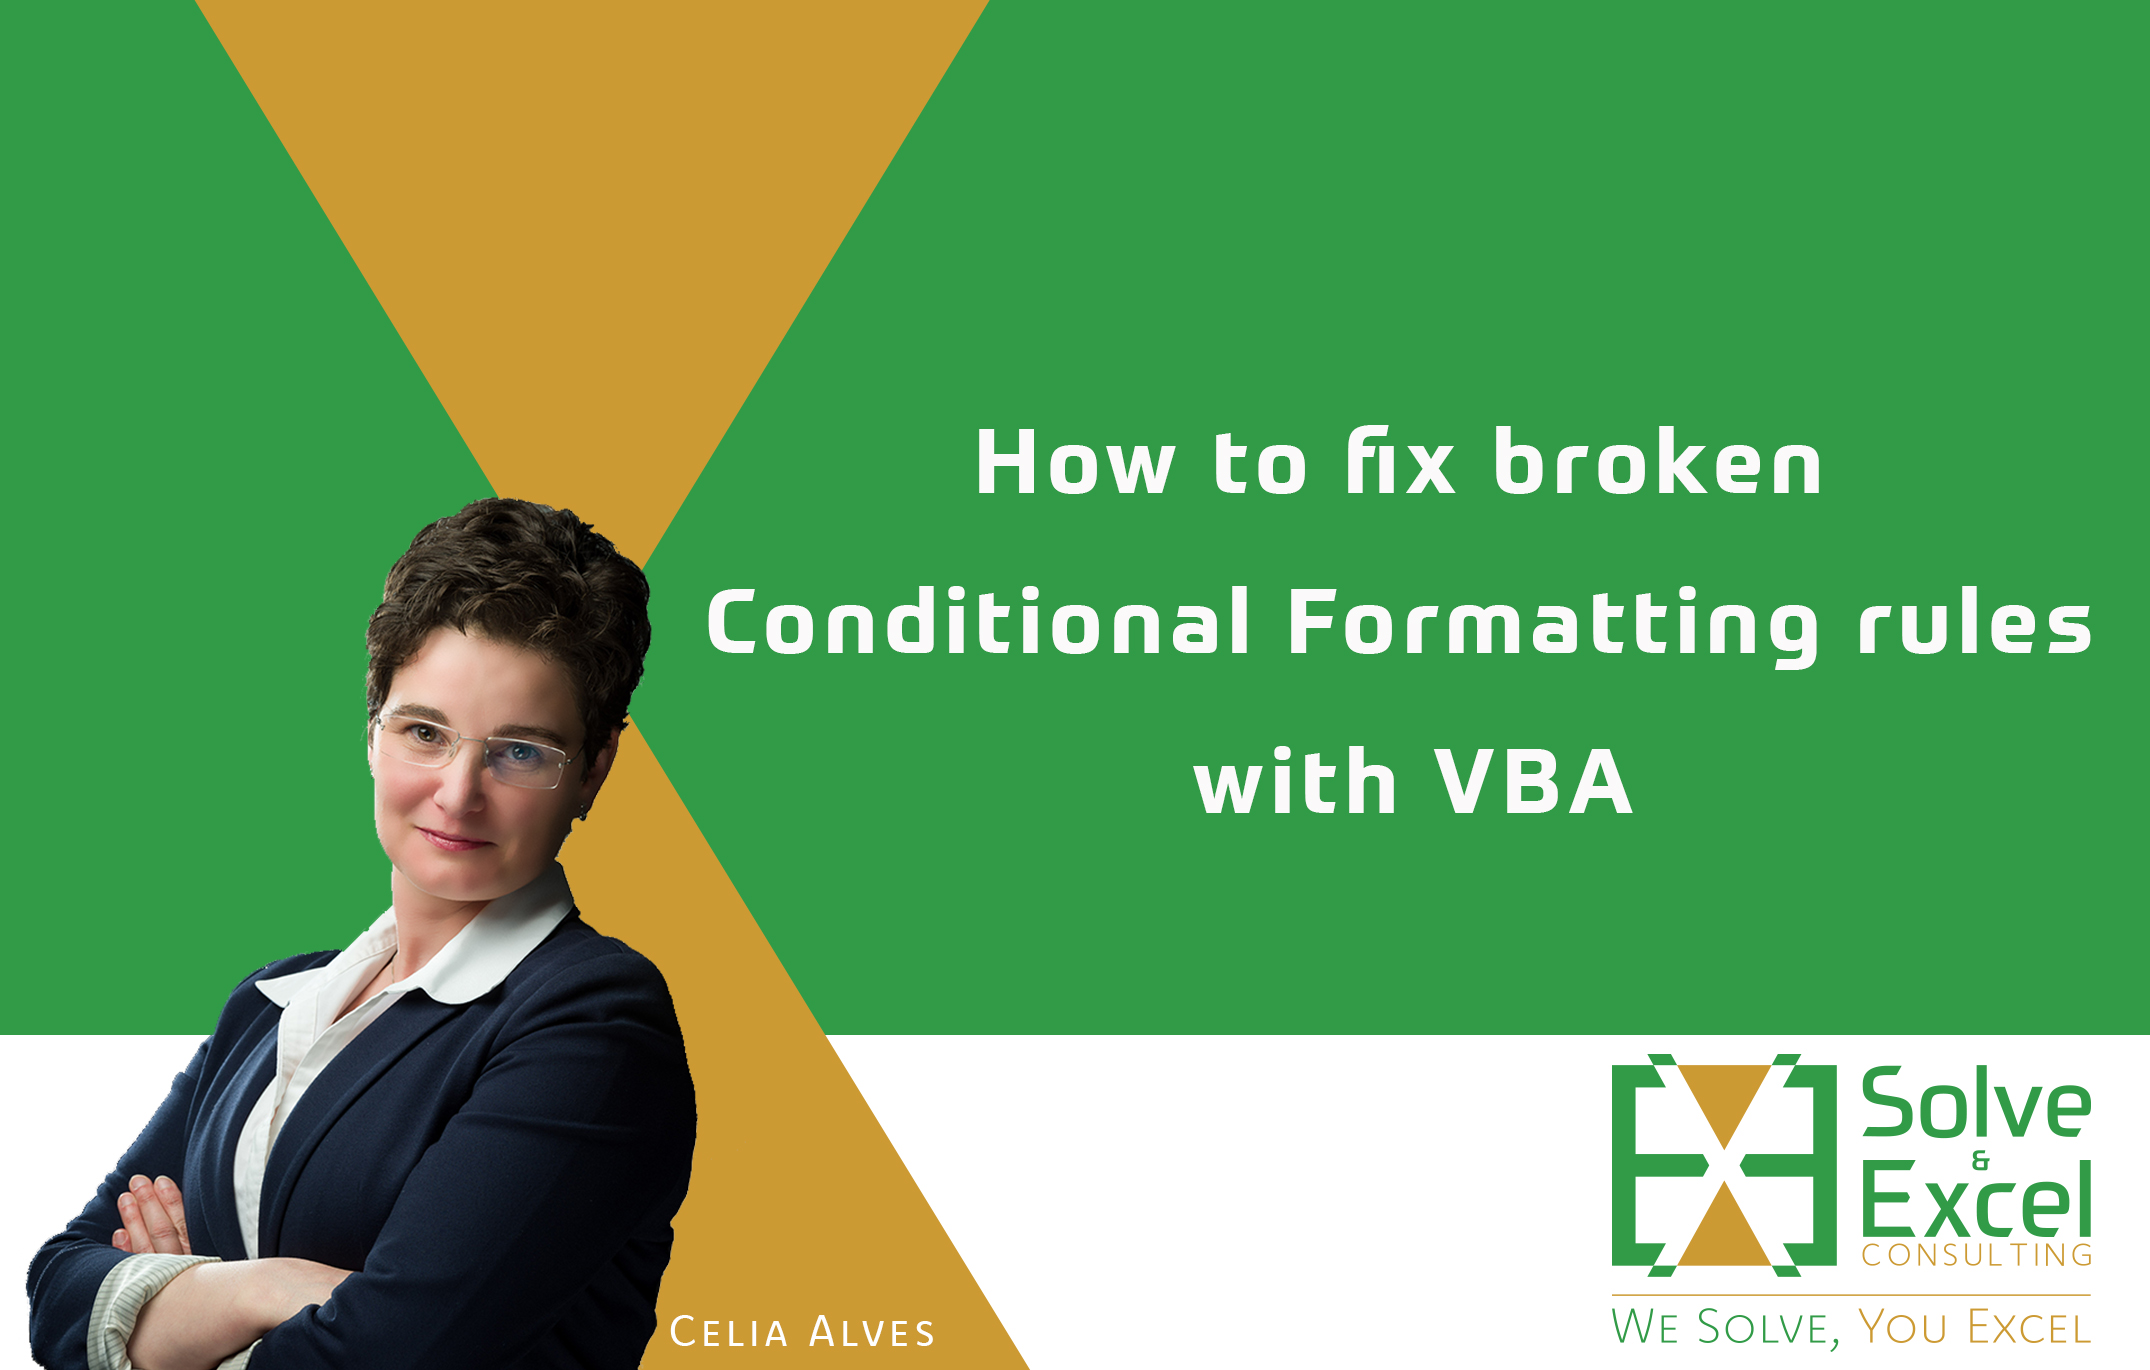 How To Fix Broken Conditional Formatting Rules With Vba